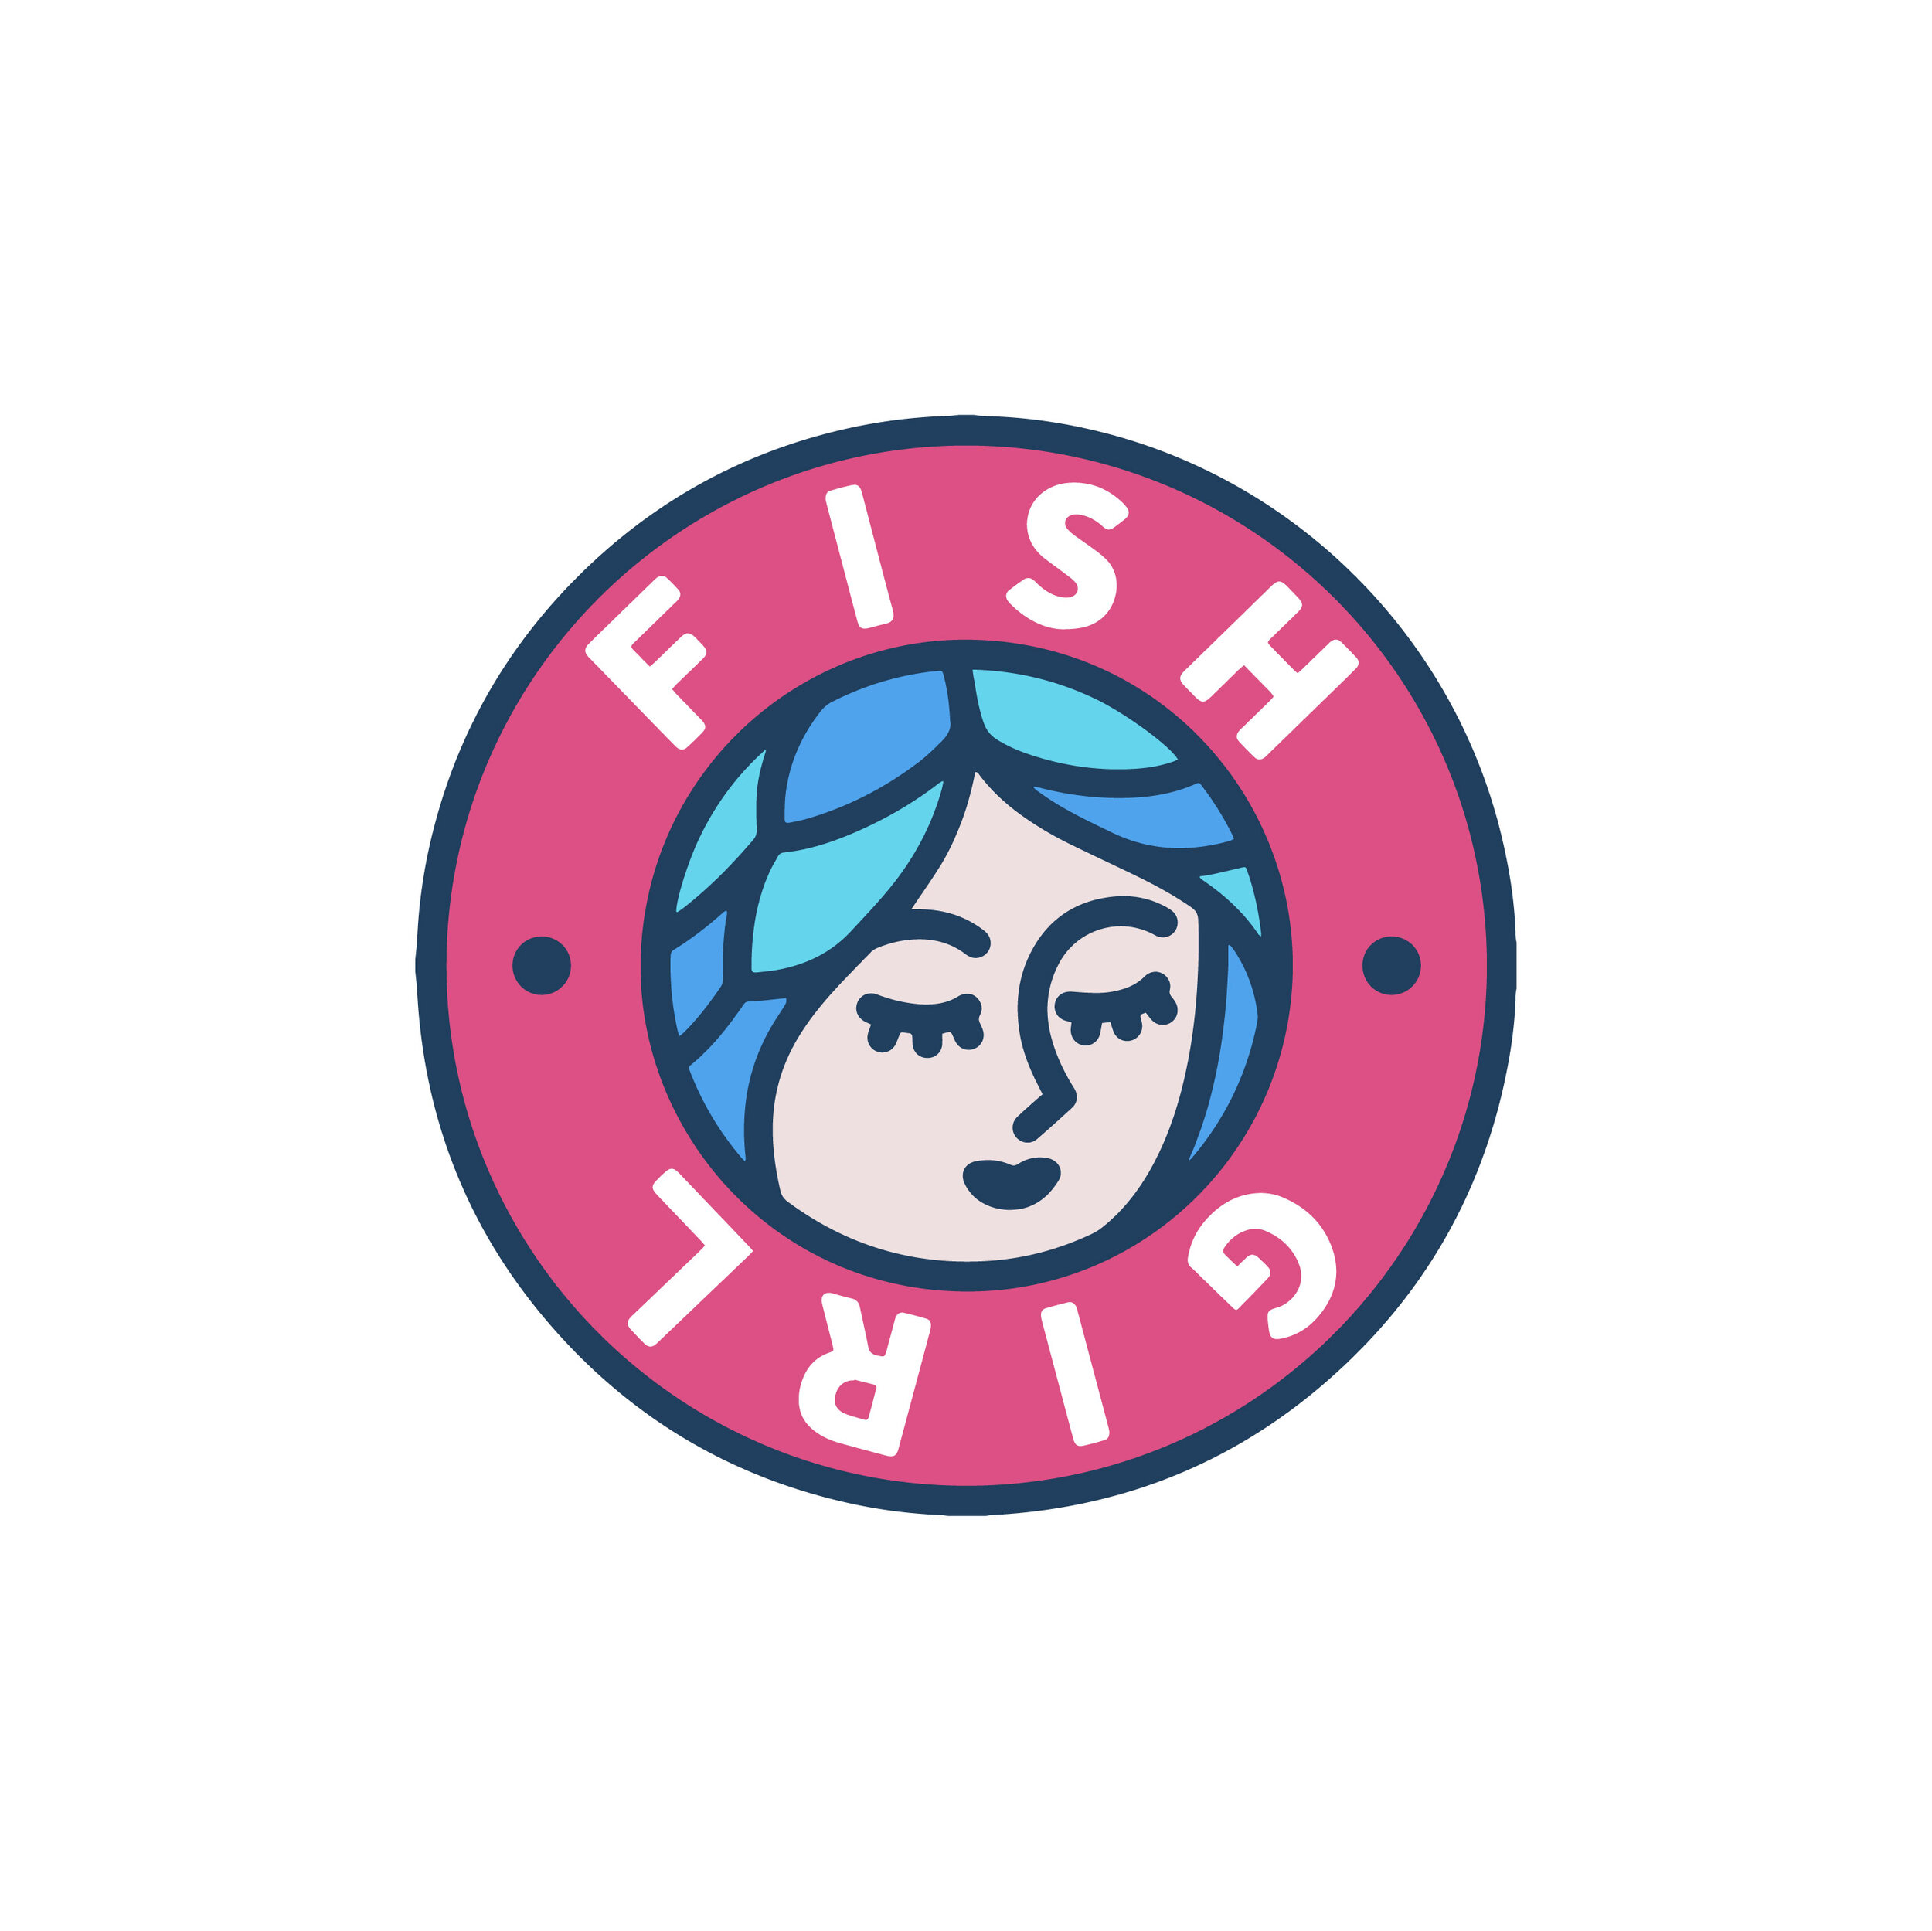 WHO is she…?! Allow me to introduce ourselves, The FISH GIRLS from High Grade Seafood use their deliciously fresh seafood and pair them with locally sourced organic ingredients to create their pokes, ceviches and pâtés. Along with Salmon patties and Tuna patties. You never know what fish girl might create next; follow us on High Grades Insta to stay up to date on our food creations. -